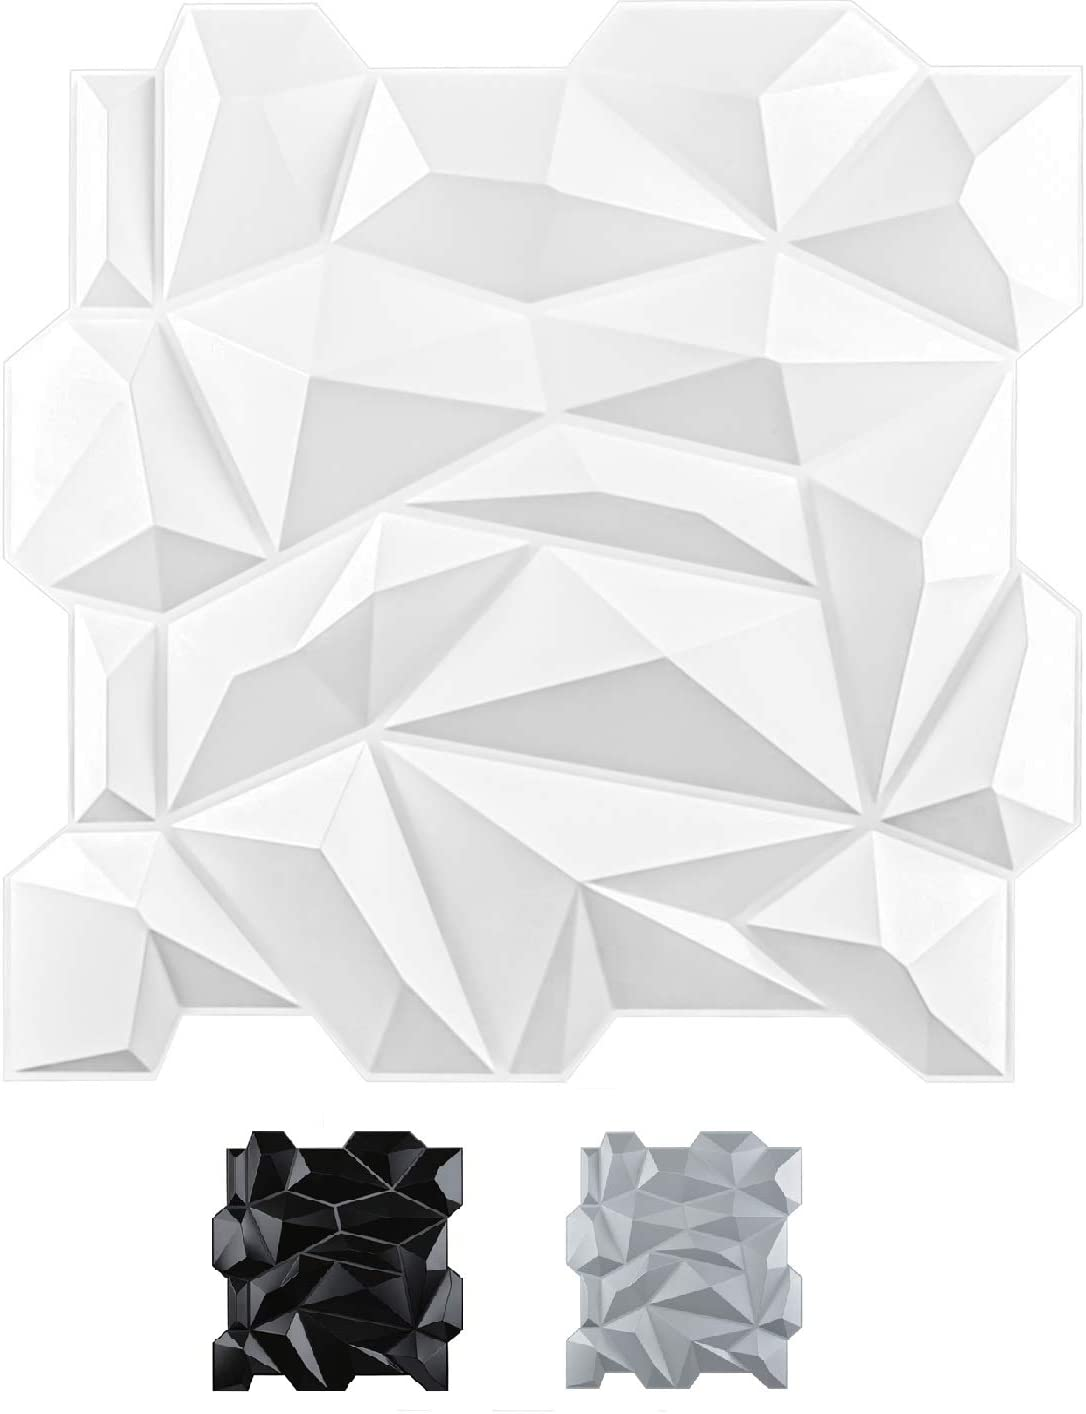 A10047  PVC 3D Diamond Wall Panel Jagged Matching-Matt White, for Residential and Commercial Interior Décor